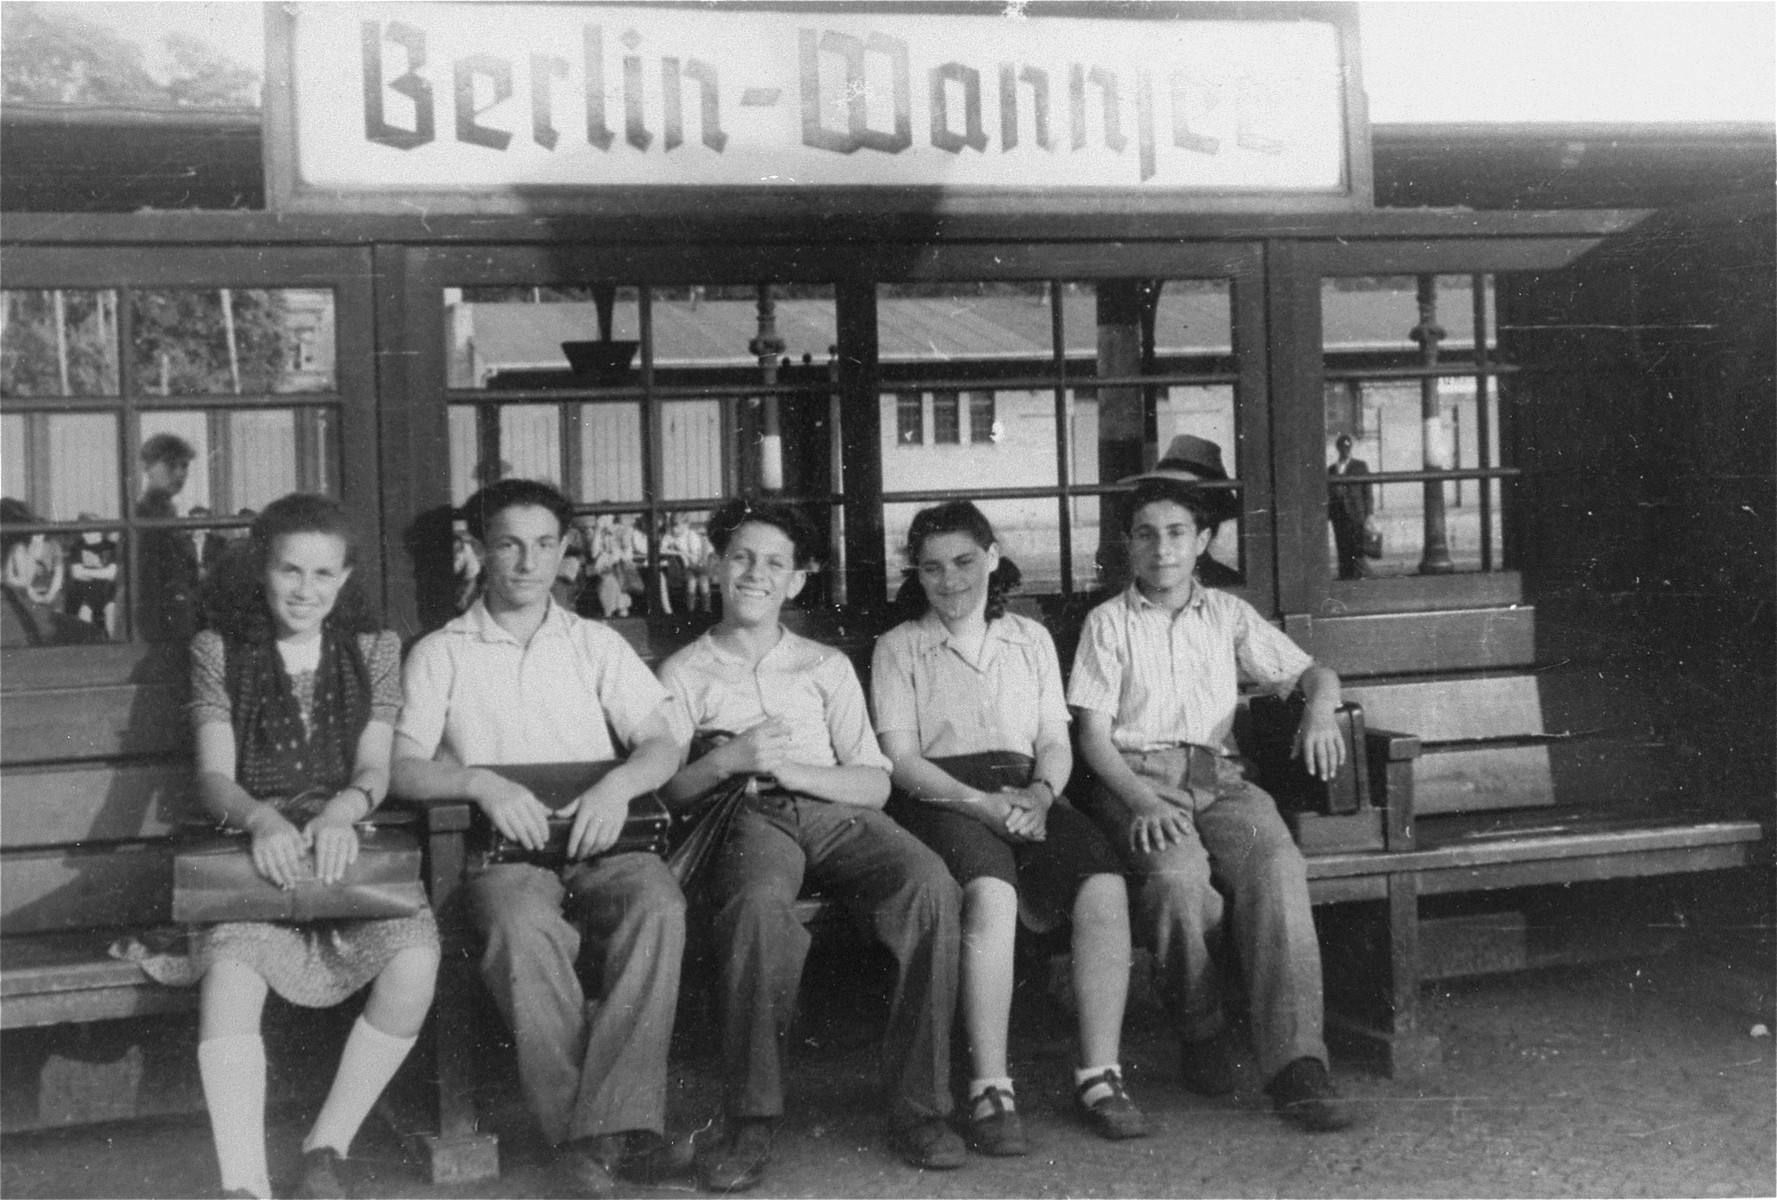 Five young DPs await a train at the Berlin-Wannsee train station.